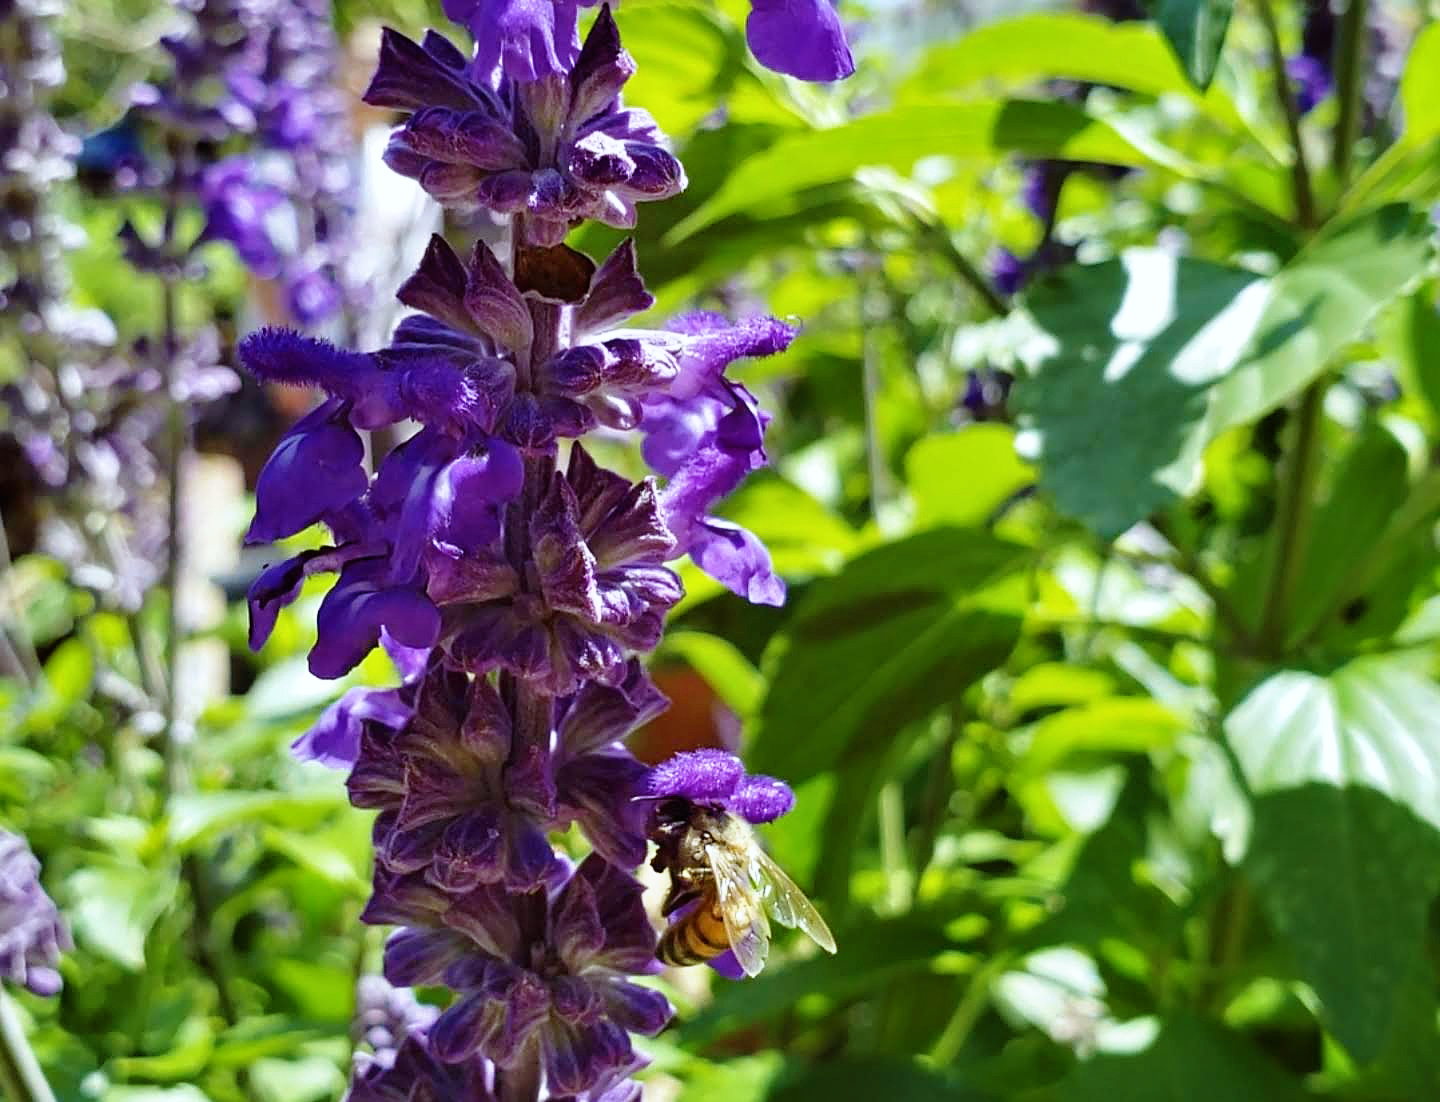 Bee on blue salvia plant